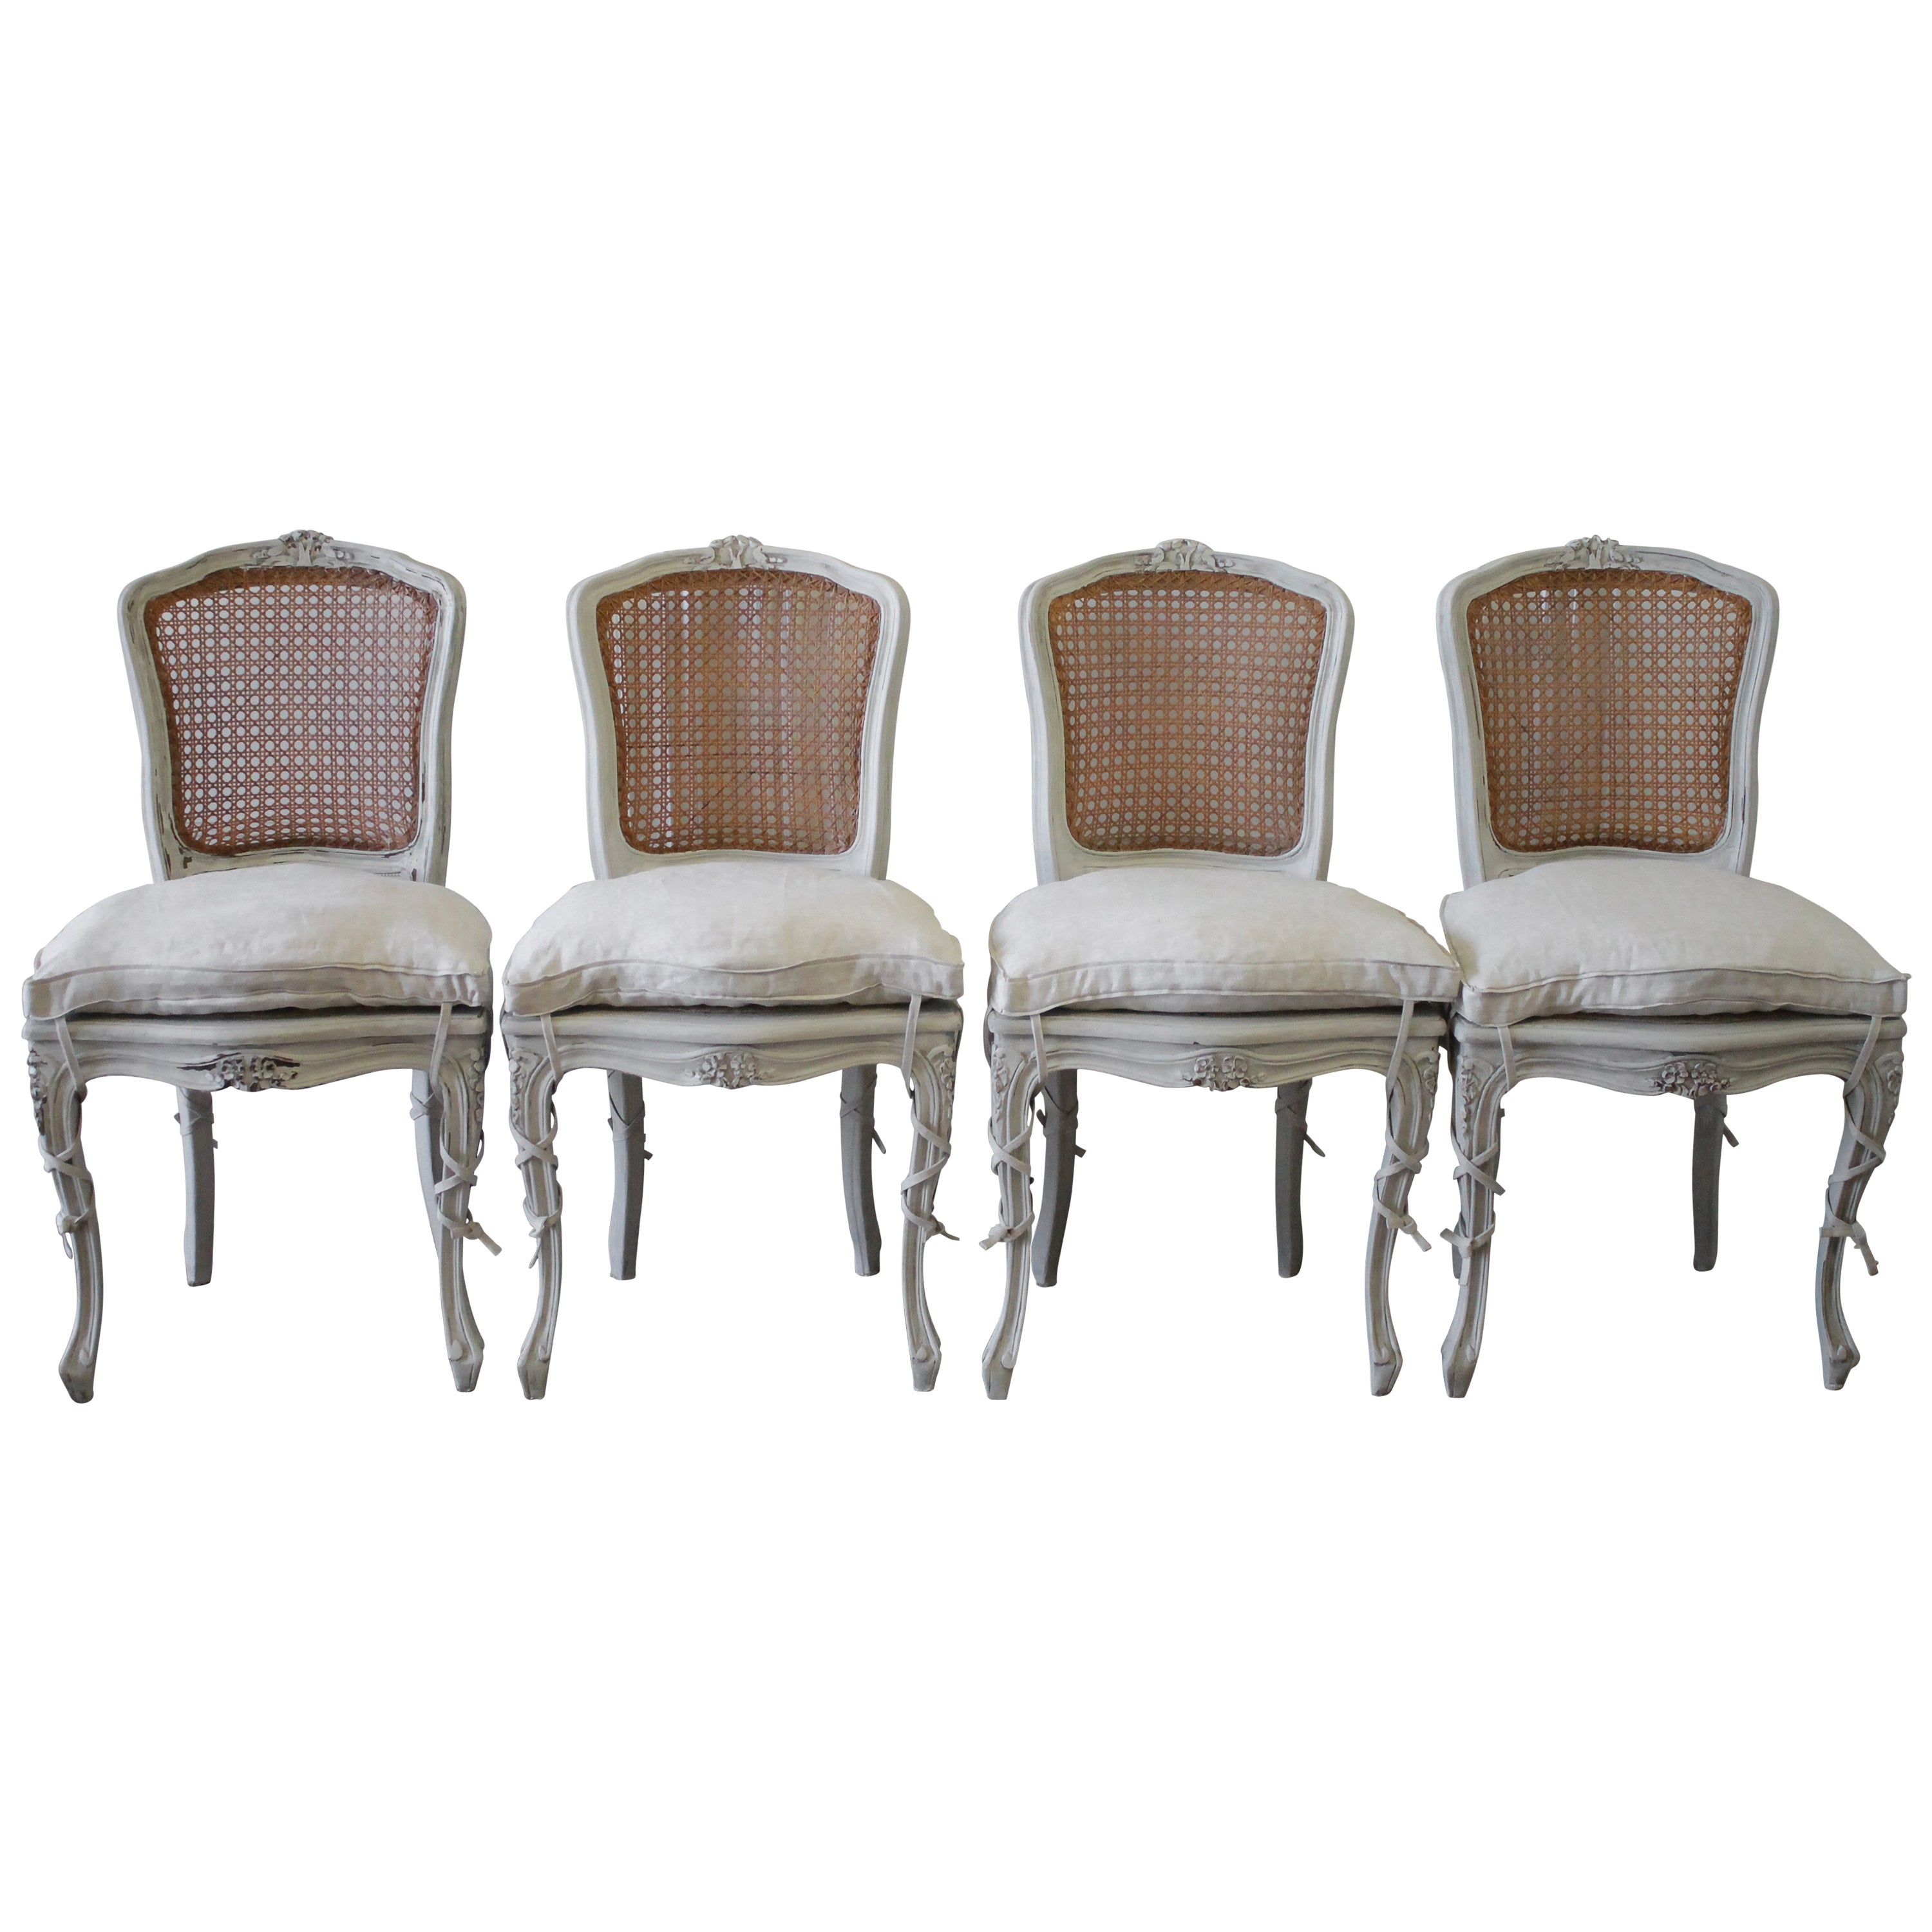 c4f284668e50 19th Century Set of Four Antique French Louis XV Style Cane Back Dining  Chairs at 1stdibs